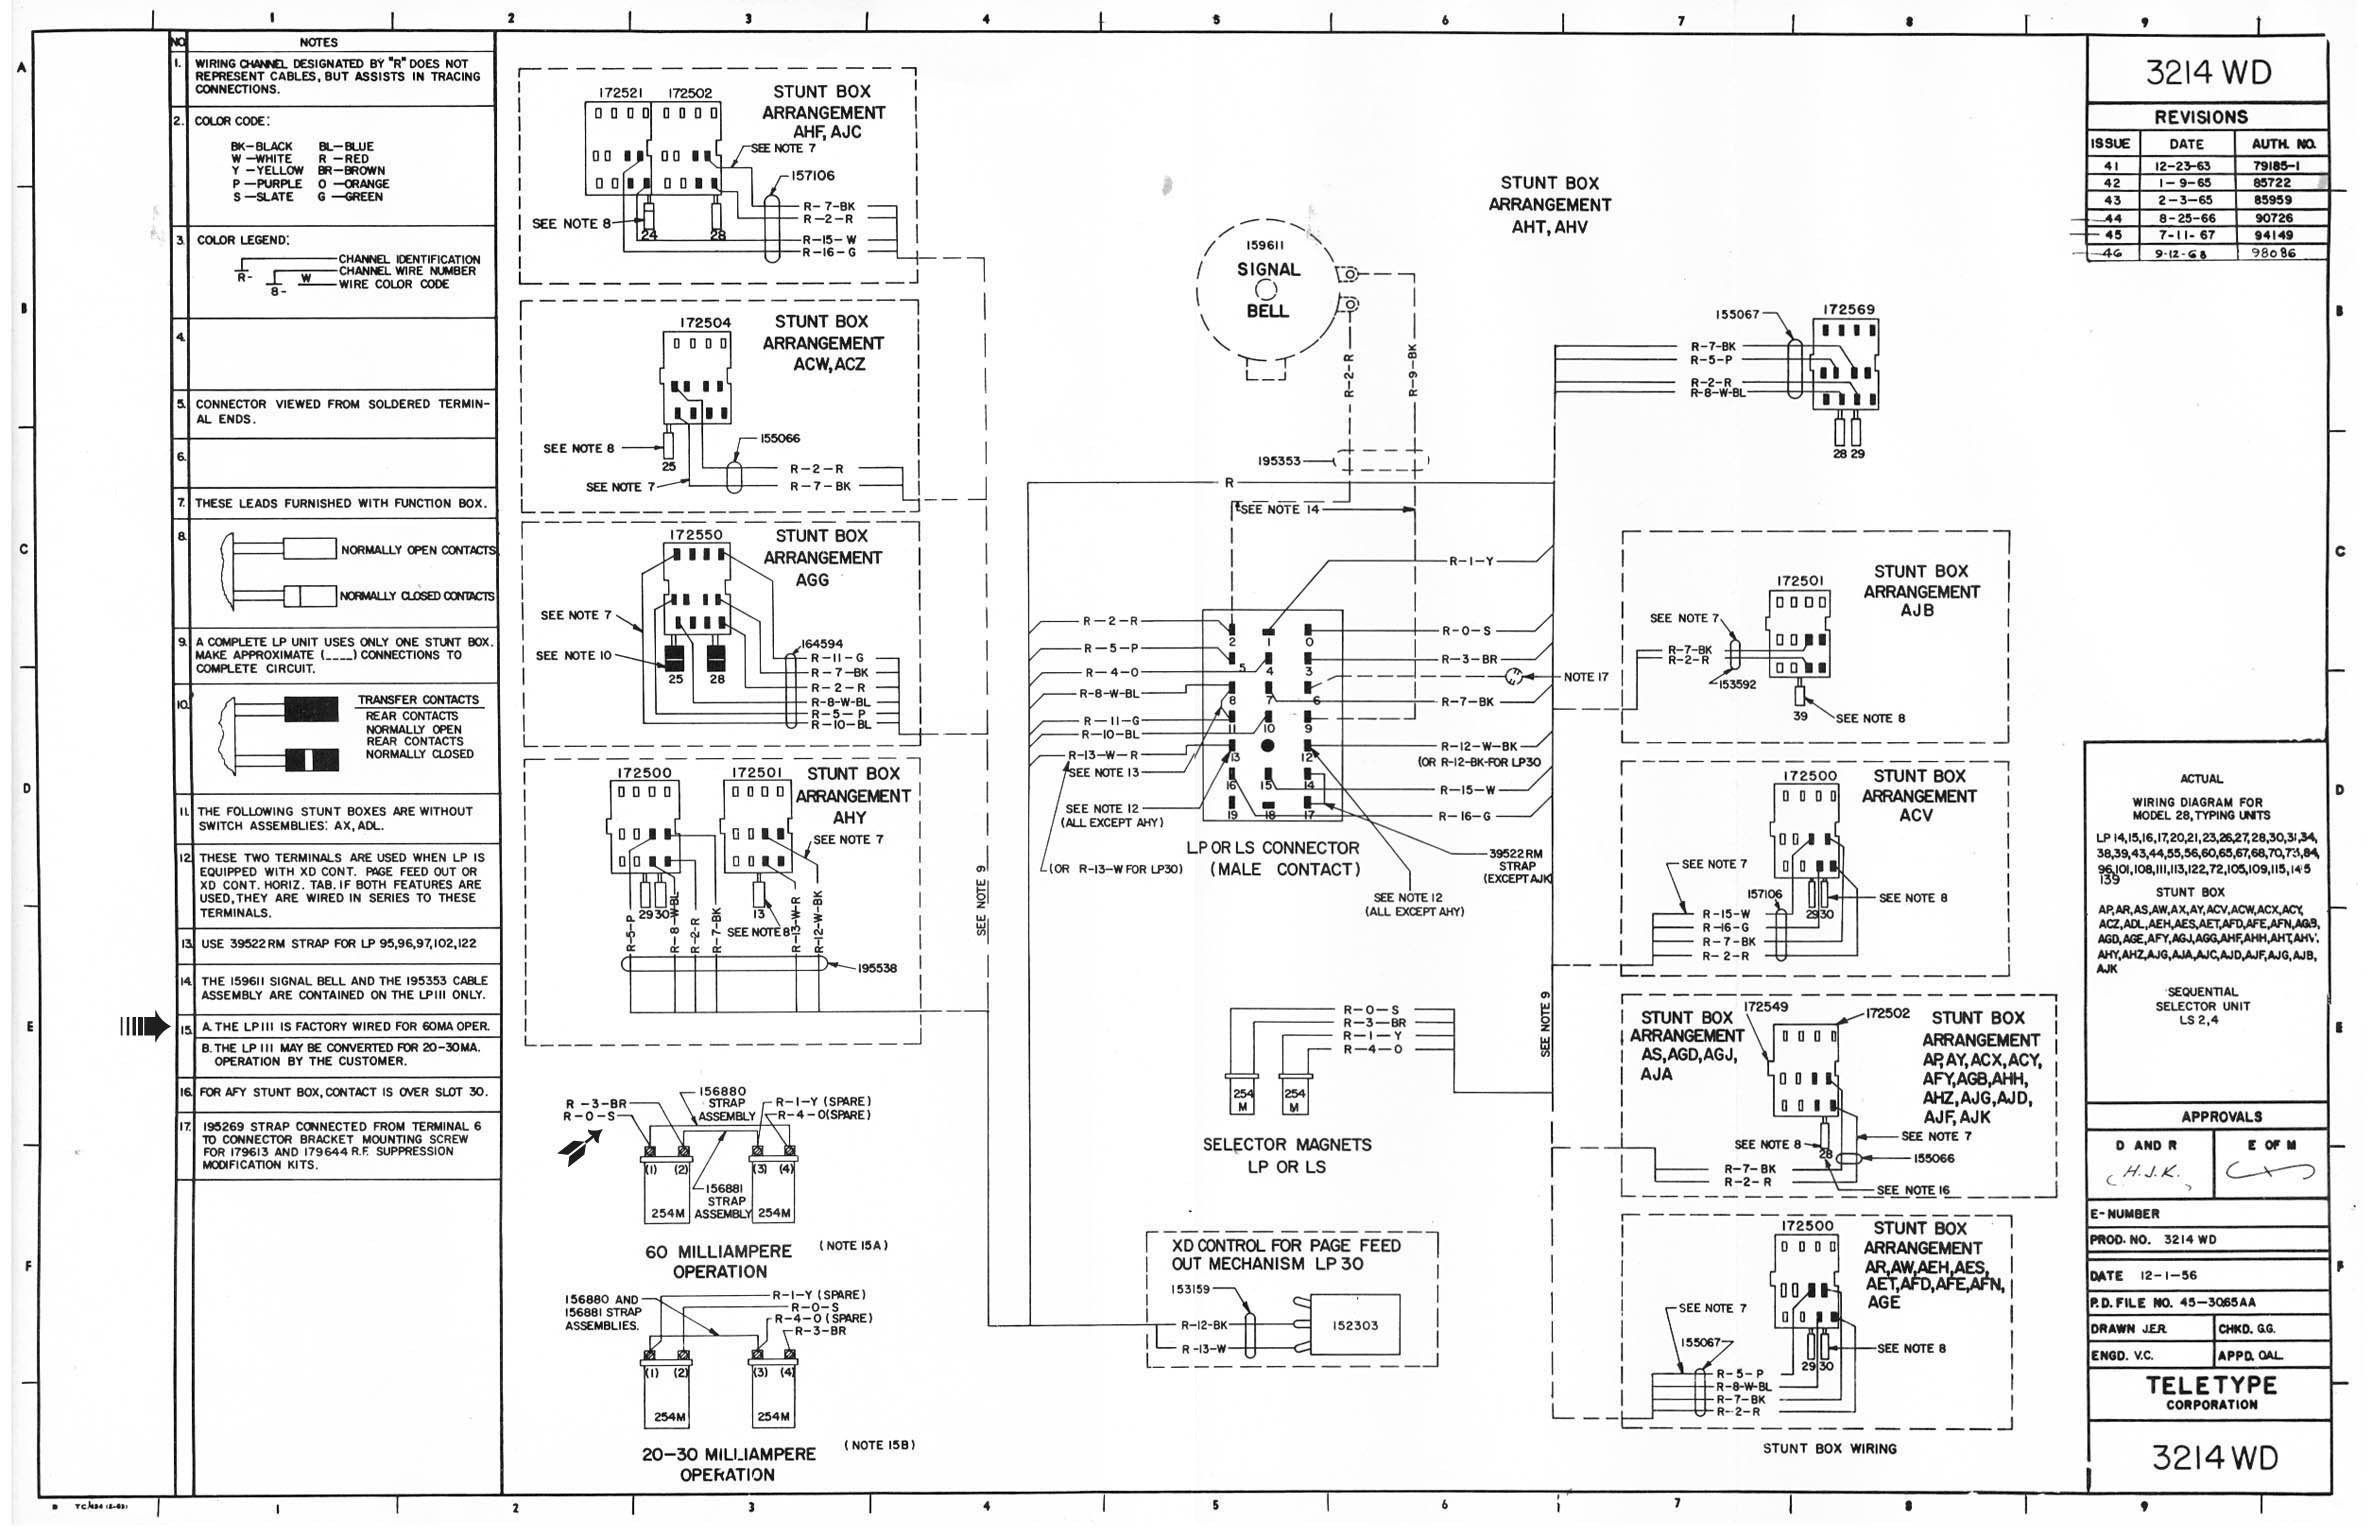 Teletype Corp Maintenance Installation Operation And Parts W 4 Radio Wire Diagram Wiring 3214wd Jpeg